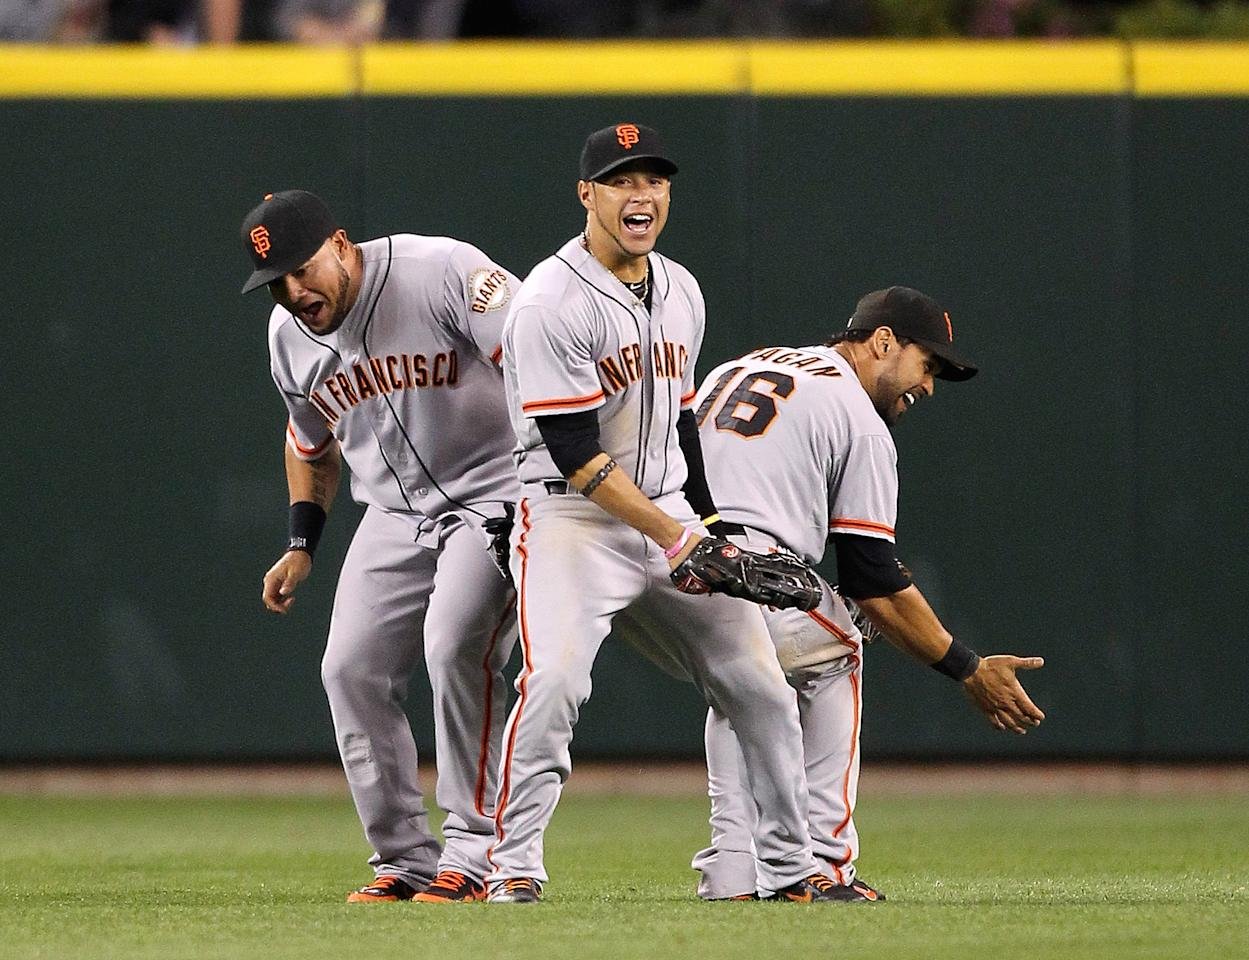 SEATTLE, WA - JUNE 15:  L to R: Melky Cabrera #53, Gregor Blanco #7, and Angel Pagan #16 of the San Francisco Giants celebrate after defeating the Seattle Mariners 4-2 at Safeco Field on June 15, 2012 in Seattle, Washington.(Photo by Otto Greule Jr/Getty Images)